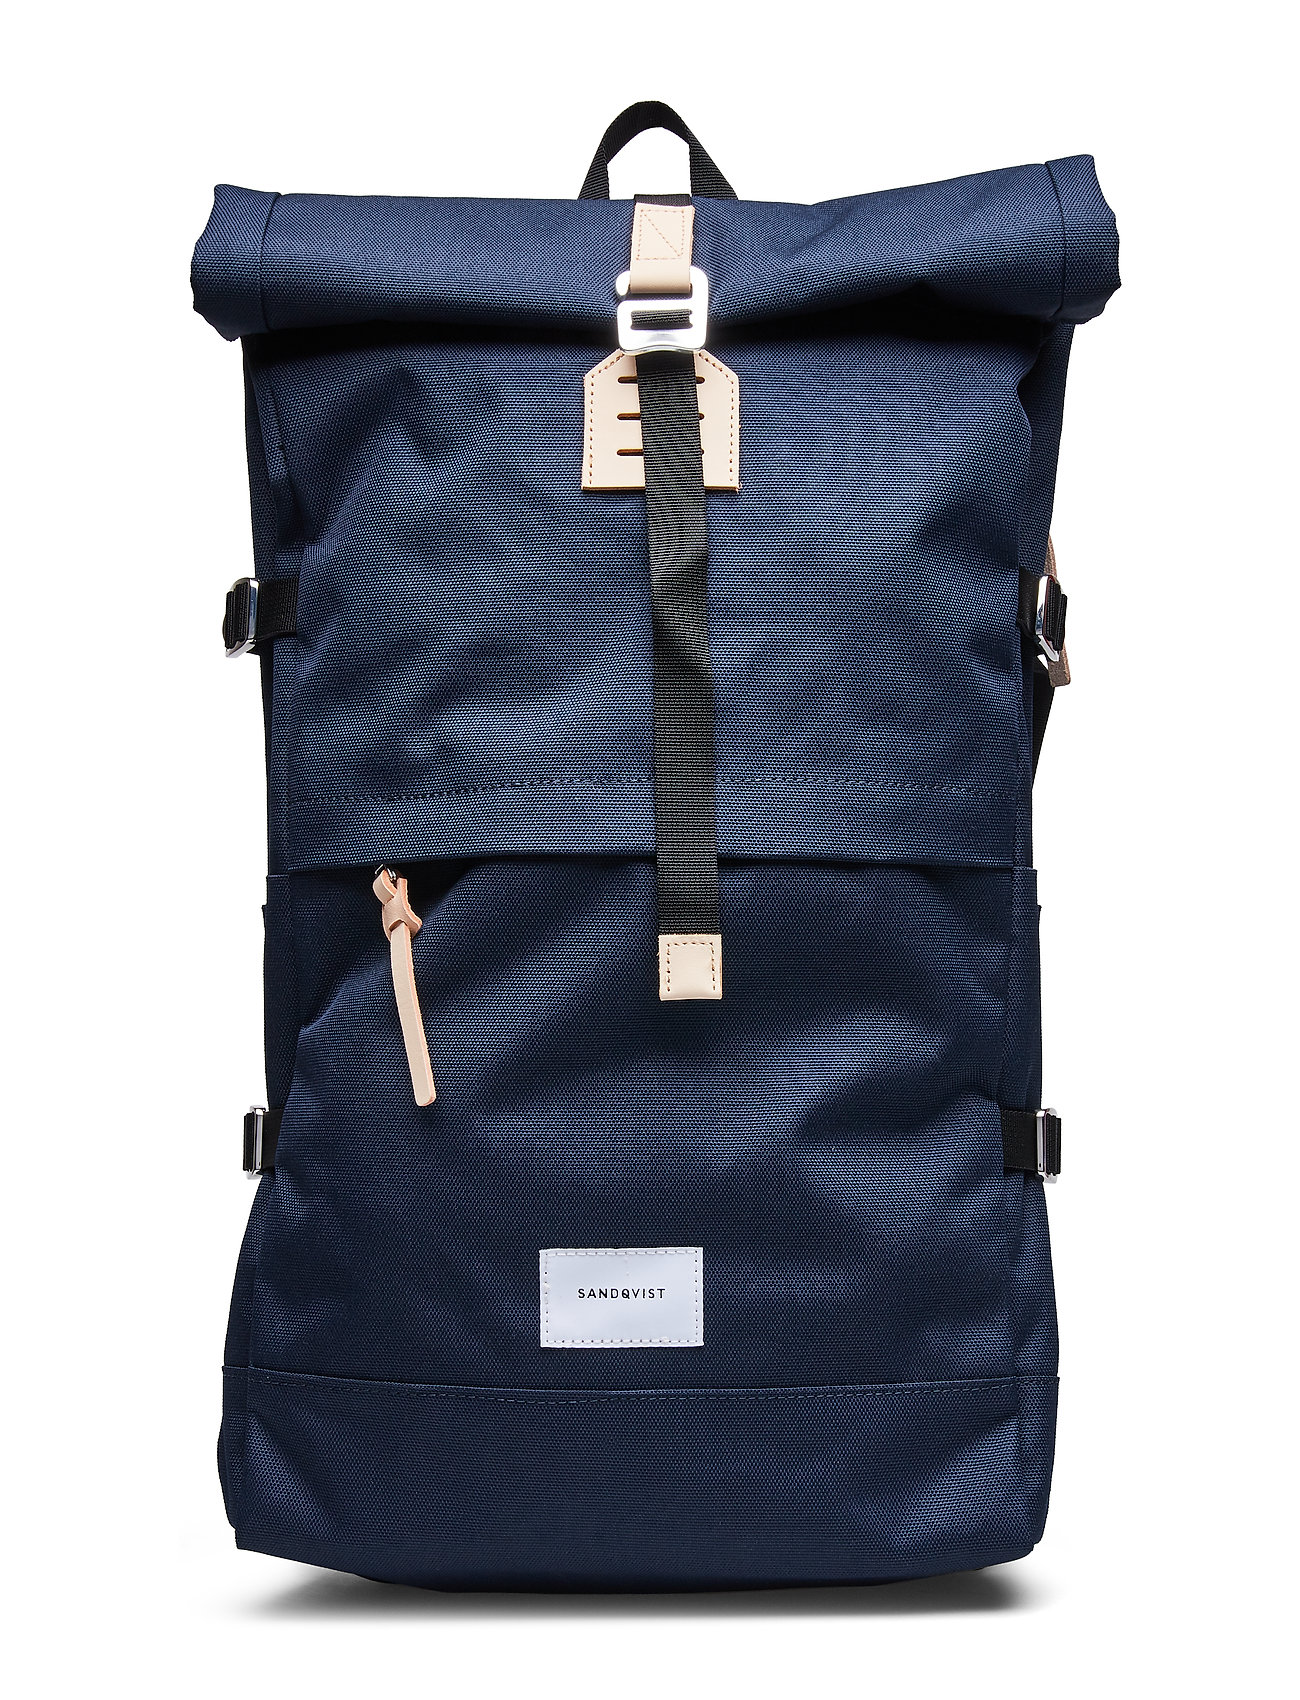 SANDQVIST BERNT - NAVY WITH NATURAL LEATHER